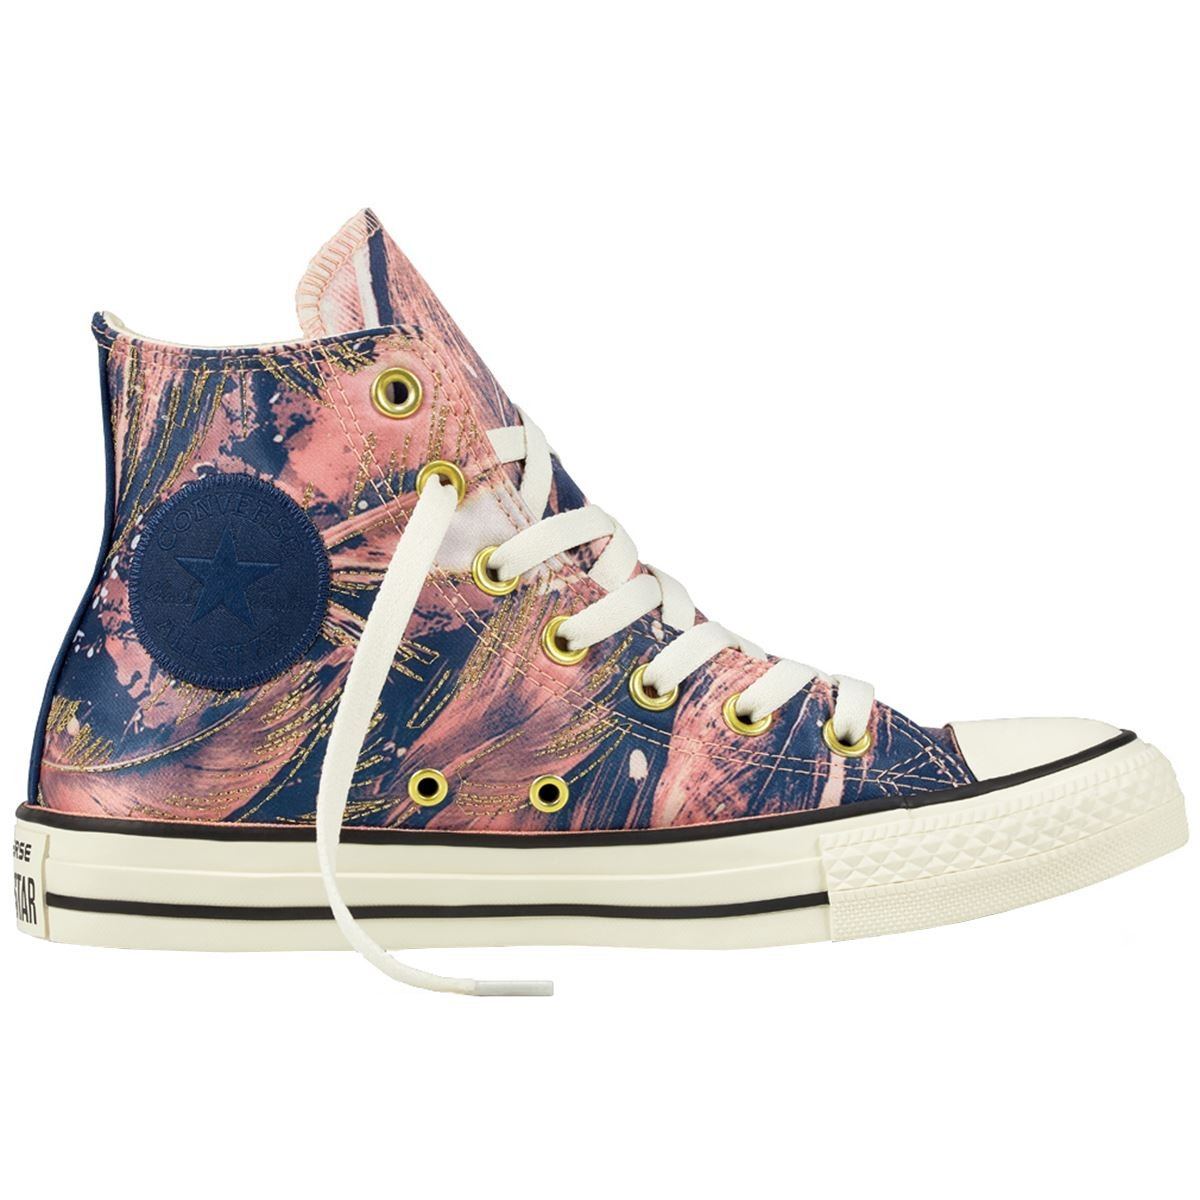 Converse Chuck Taylor All Star Satin Hi Top Sneakers Womens Fashion-Sneakers 559863C-689_9 - Pale Coral/Navy/Egret